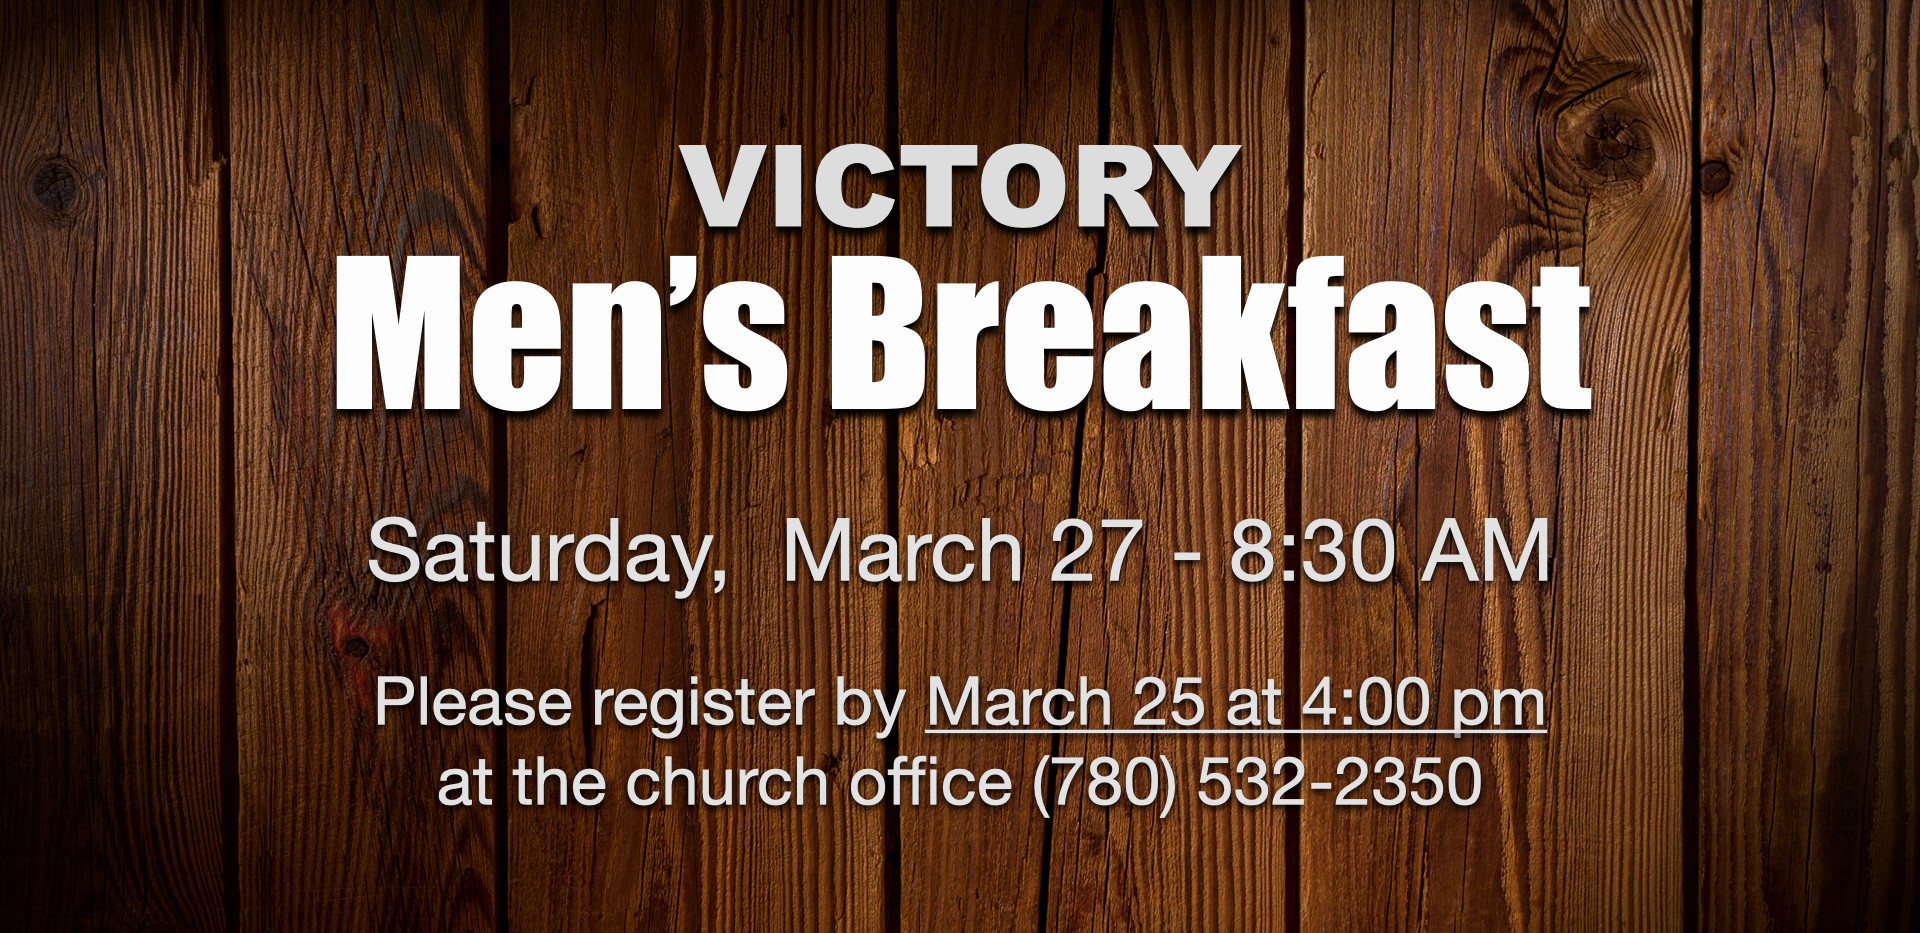 VIctory Men's Breakfast